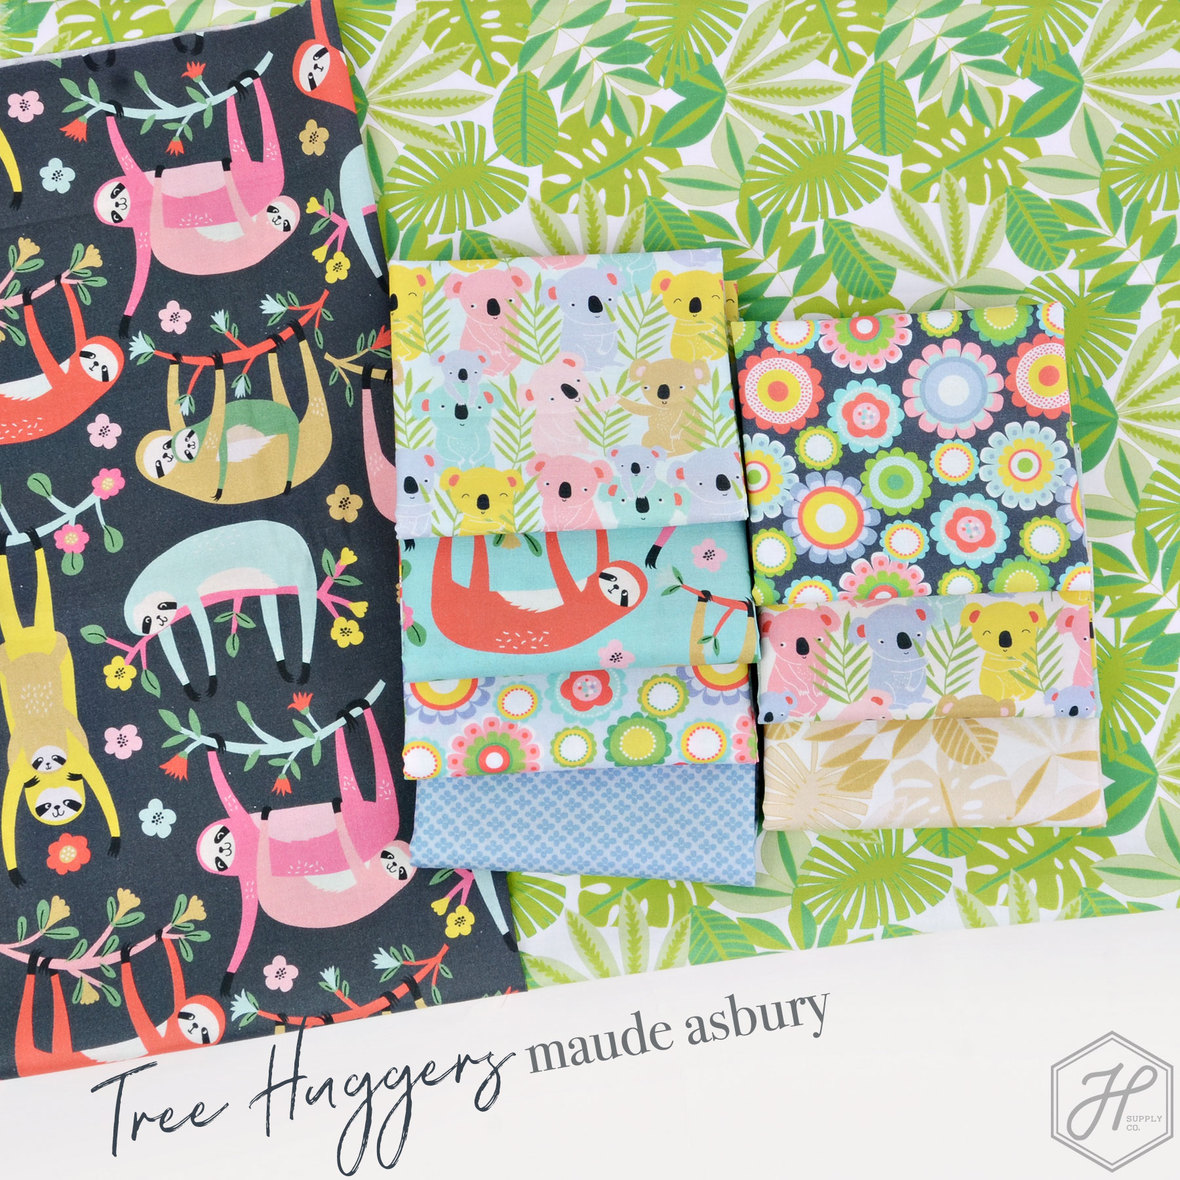 Tree-Huggers-Fabric-poster-Maude-Asbury-for-Blend-at-Hawthorne